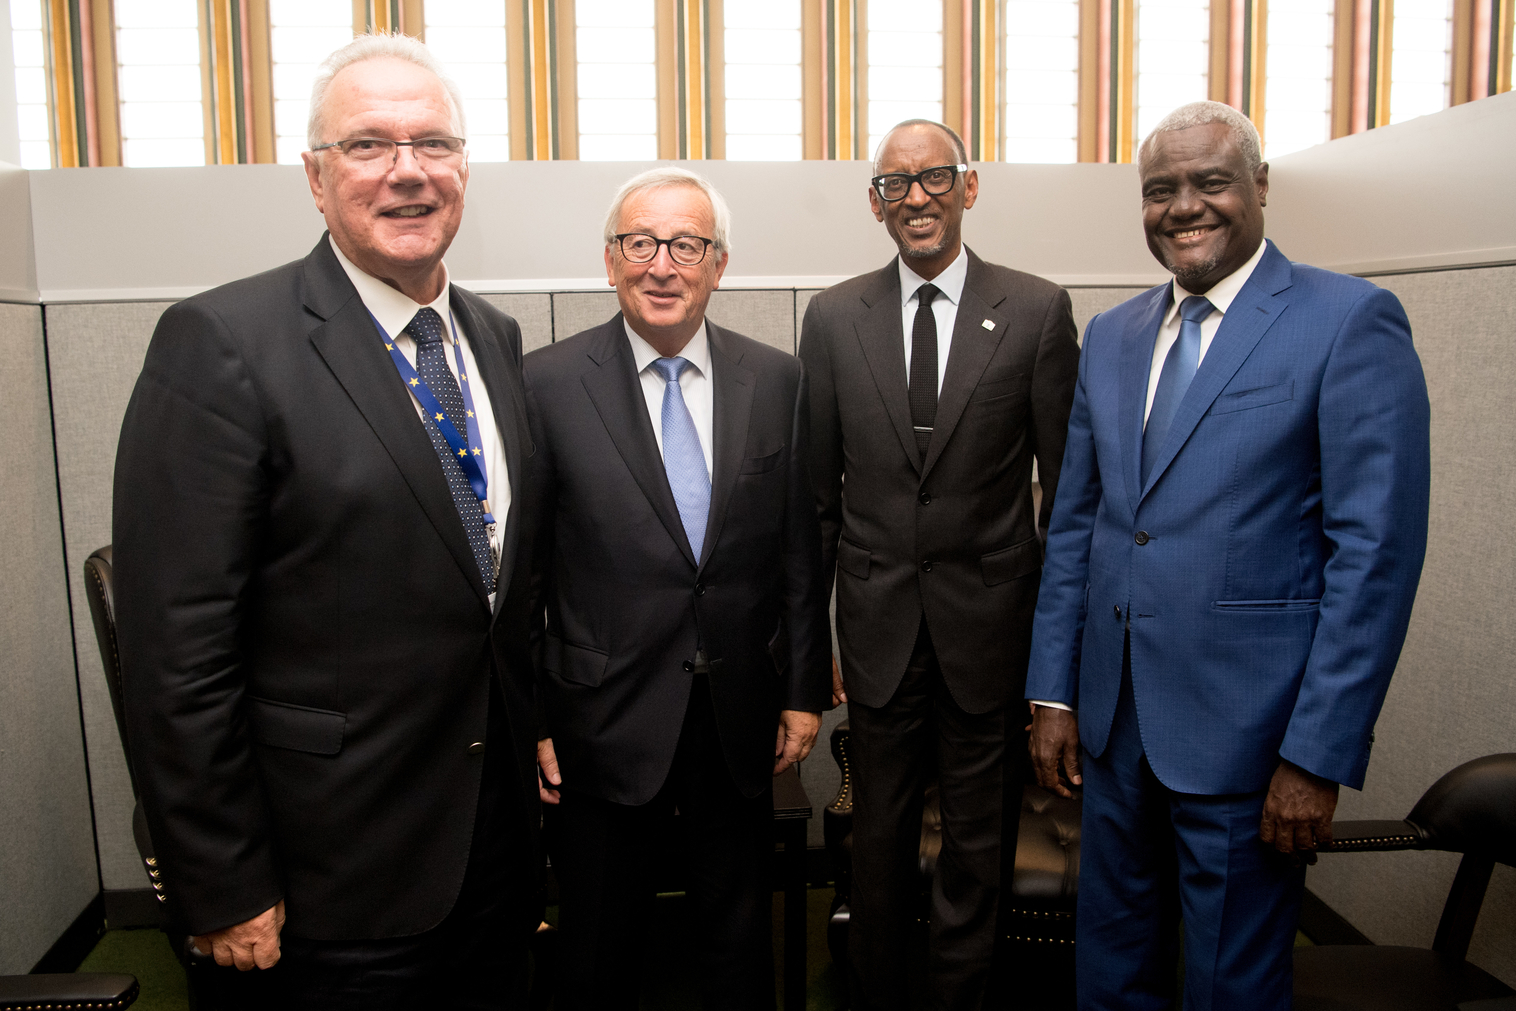 Commissioner Neven Mimica, EC president Jean Claude Juncker, Chairperson of the African Union Moussa Faki Mahamat, President of Rwanda Paul Kagame